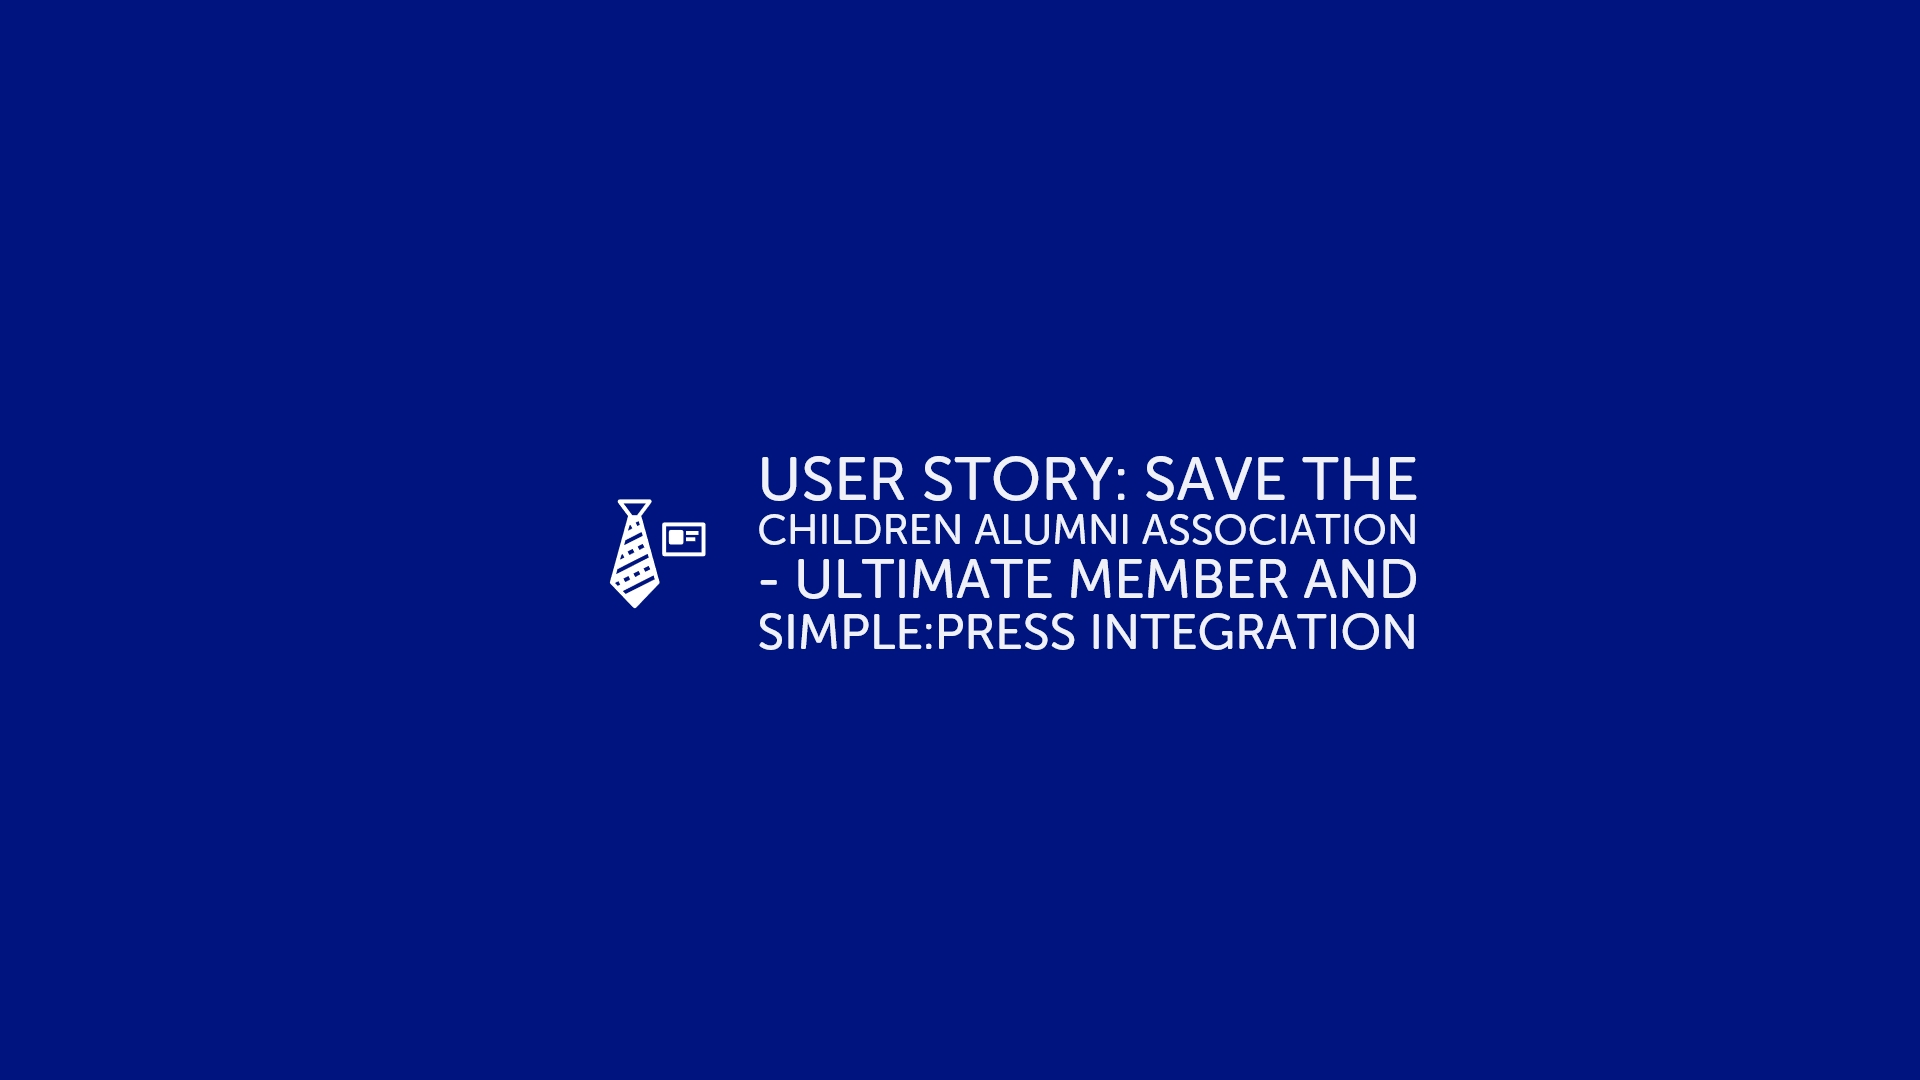 Simple_Press User Story_ Save the Children Alumni Association - Ultimate Member and Simple_Press Integration